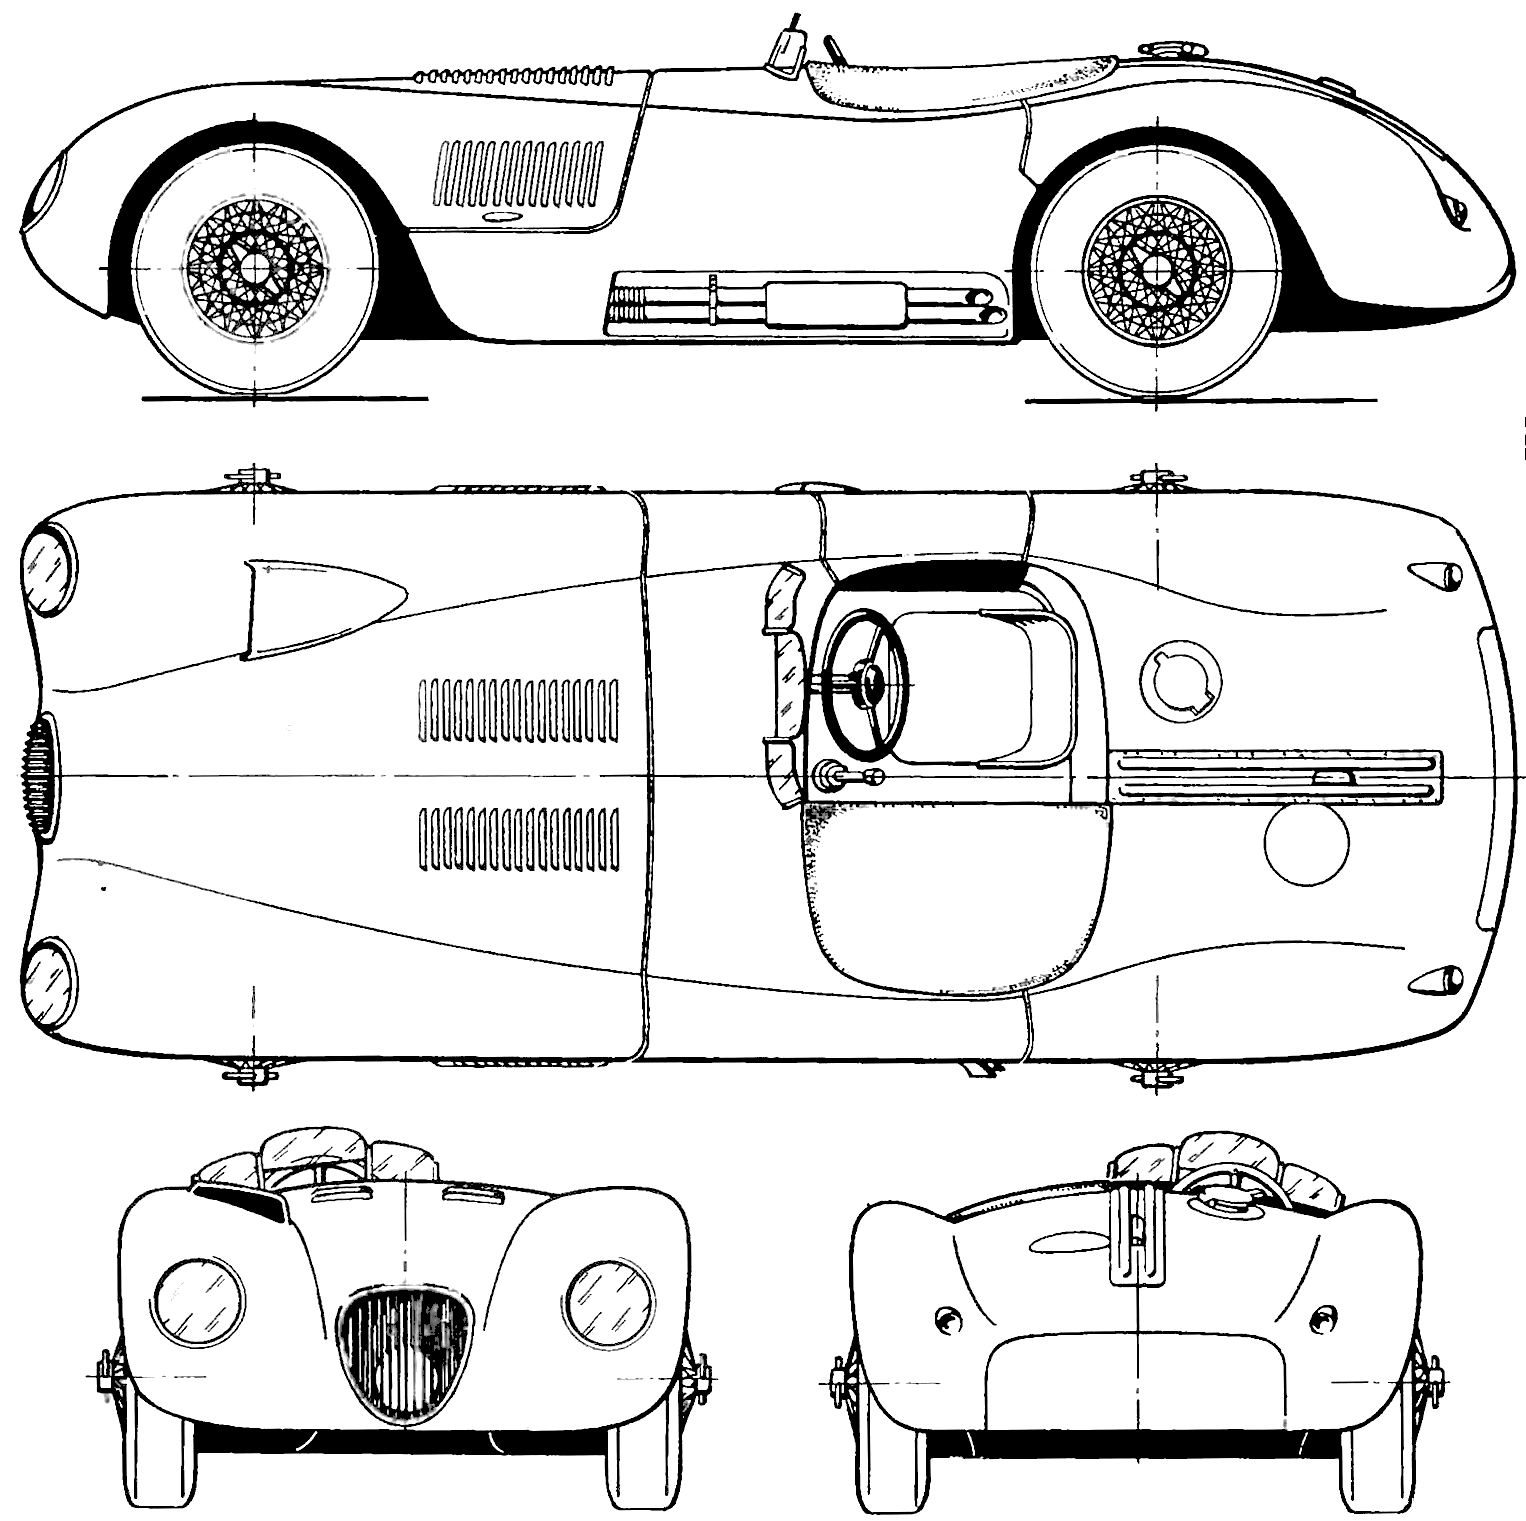 Jaguar c type blueprint download free blueprint for 3d modeling jaguar c type blueprint malvernweather Gallery